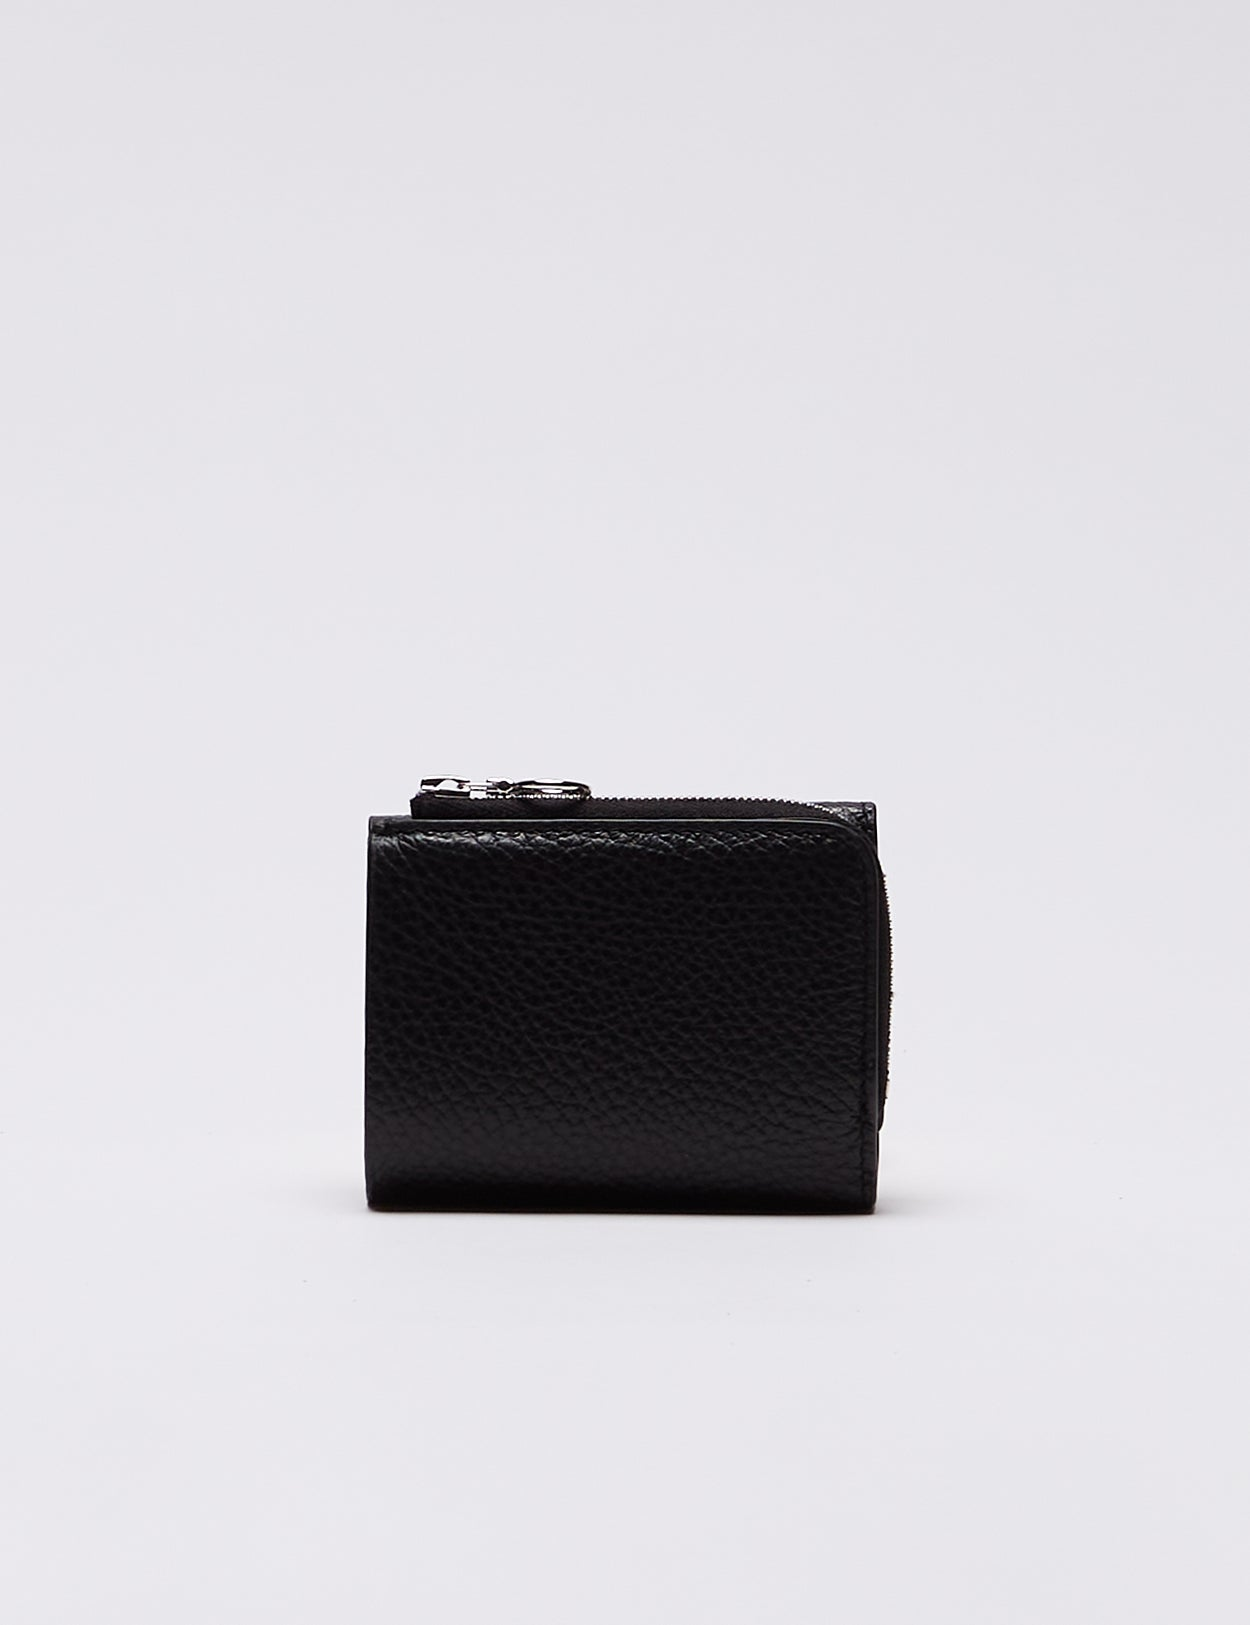 BLACK Grained cow leather MINI WALLET TYPE A PG37